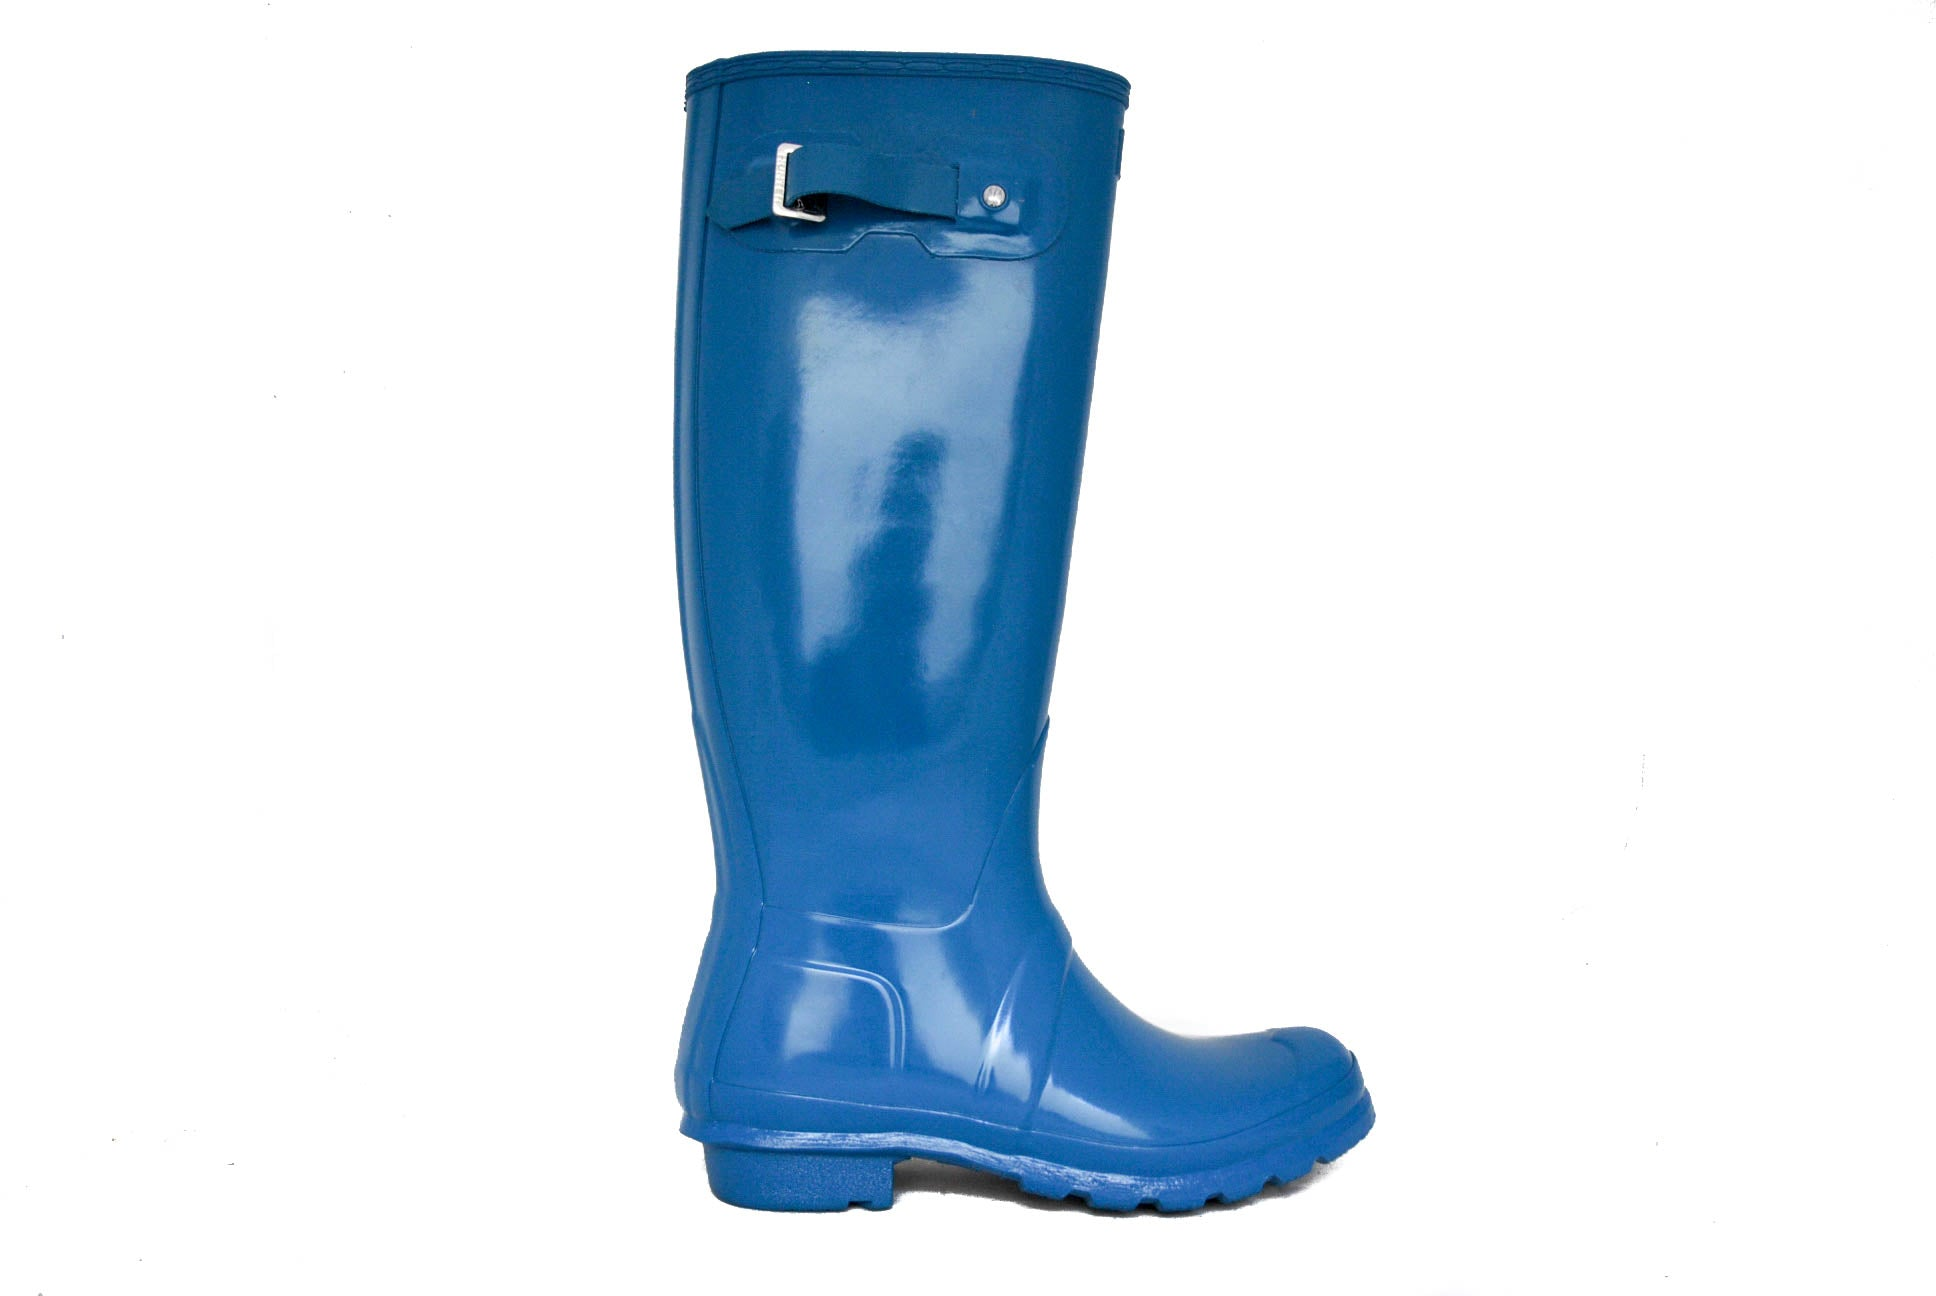 Hunter Women's Original Tall Gloss Rain Boot in Ocean Blue